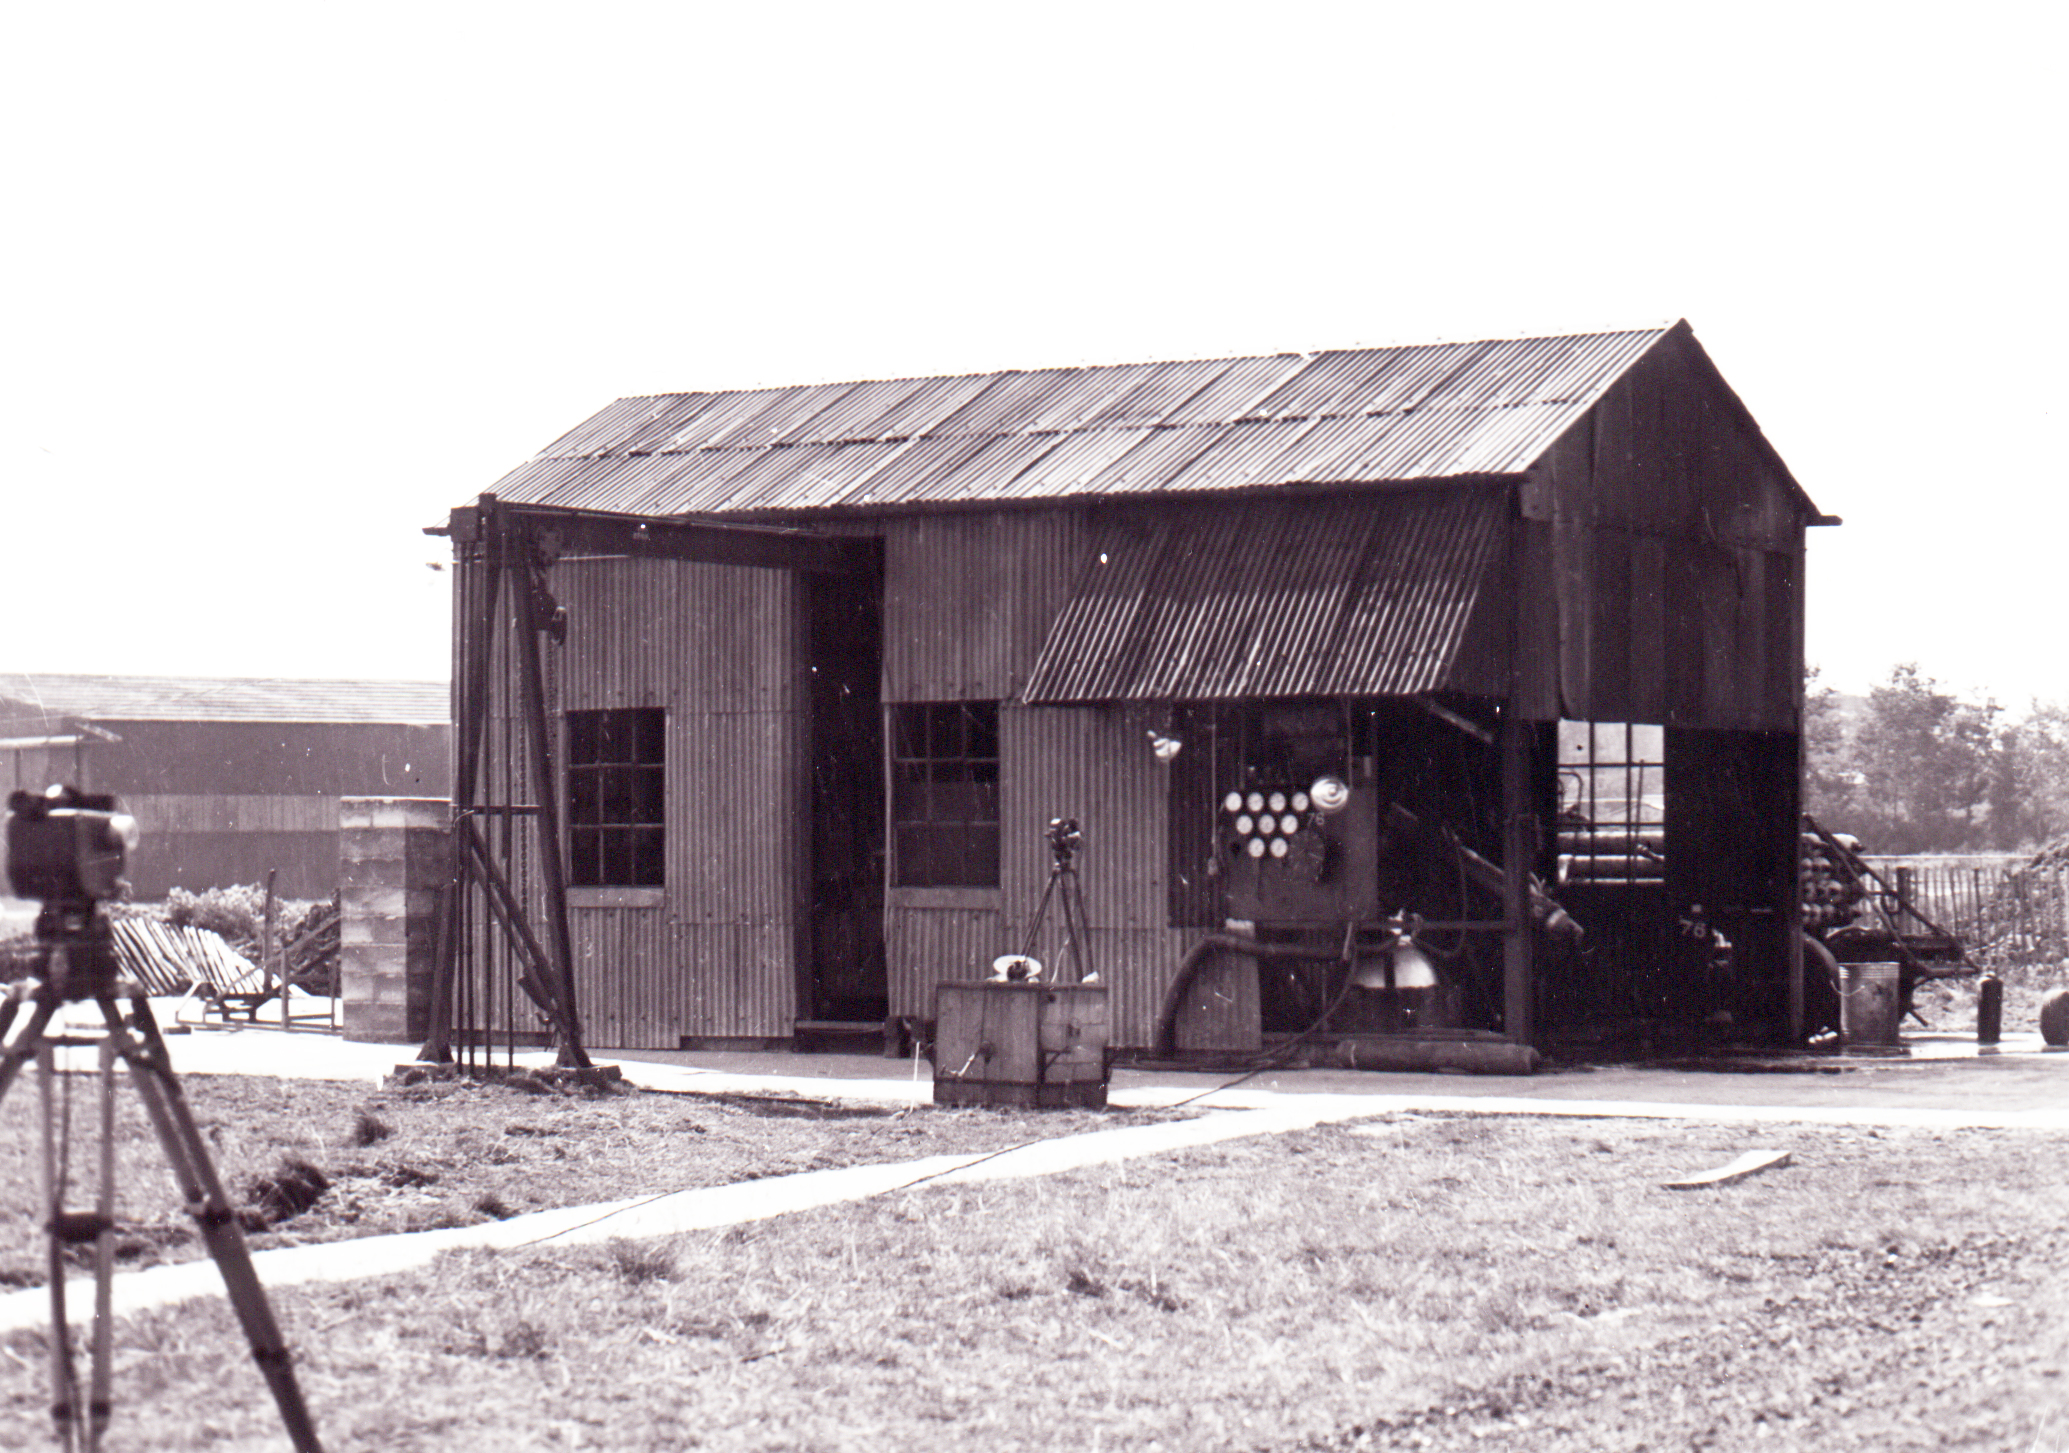 004Early rocket test facilities.jpg